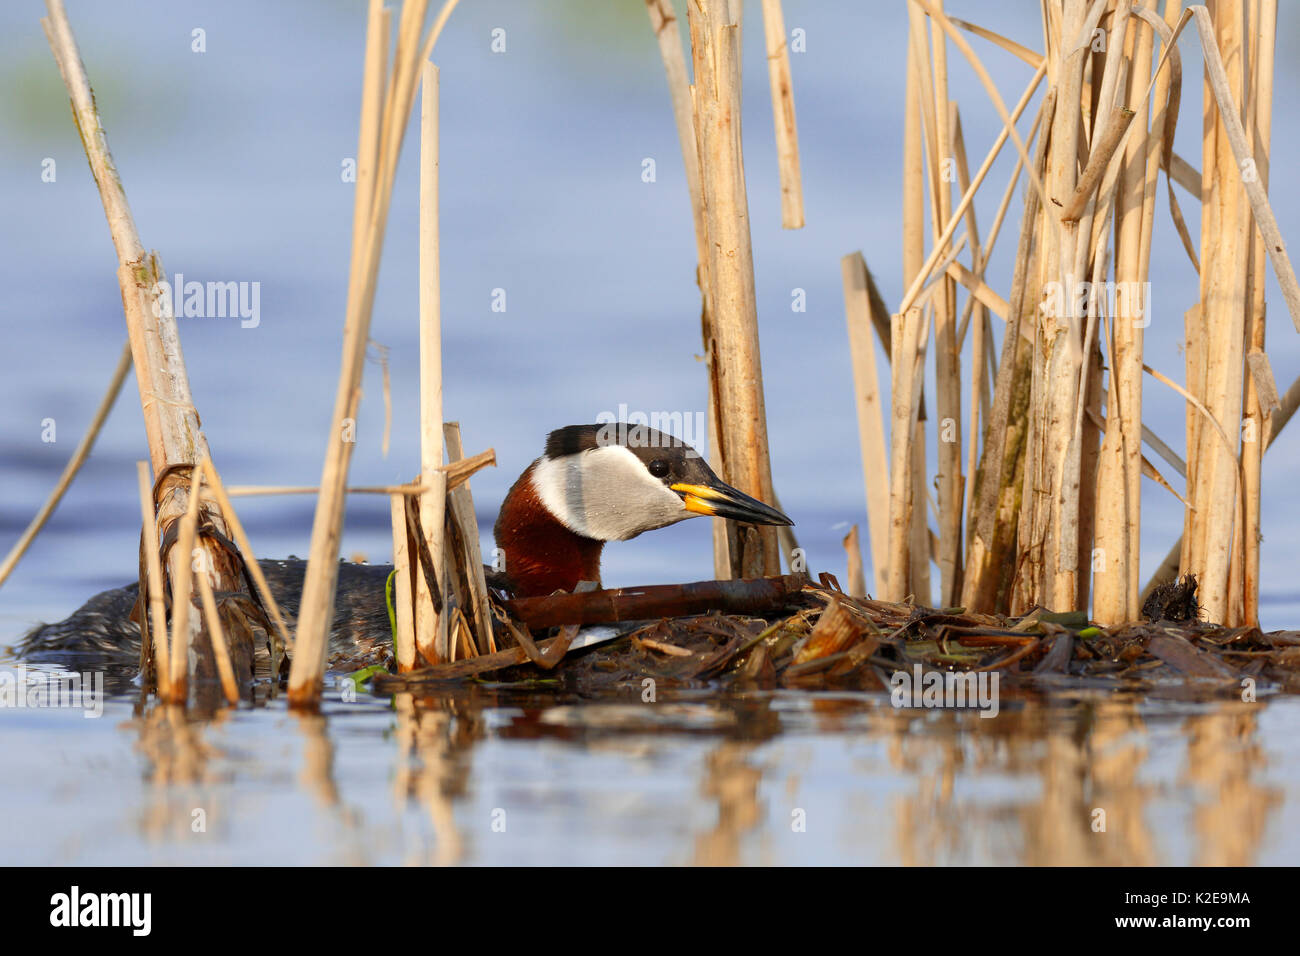 Red-necked grebe (Podiceps grisegena), with nesting material, nature river area Peene Valley, Mecklenburg-Western - Stock Image